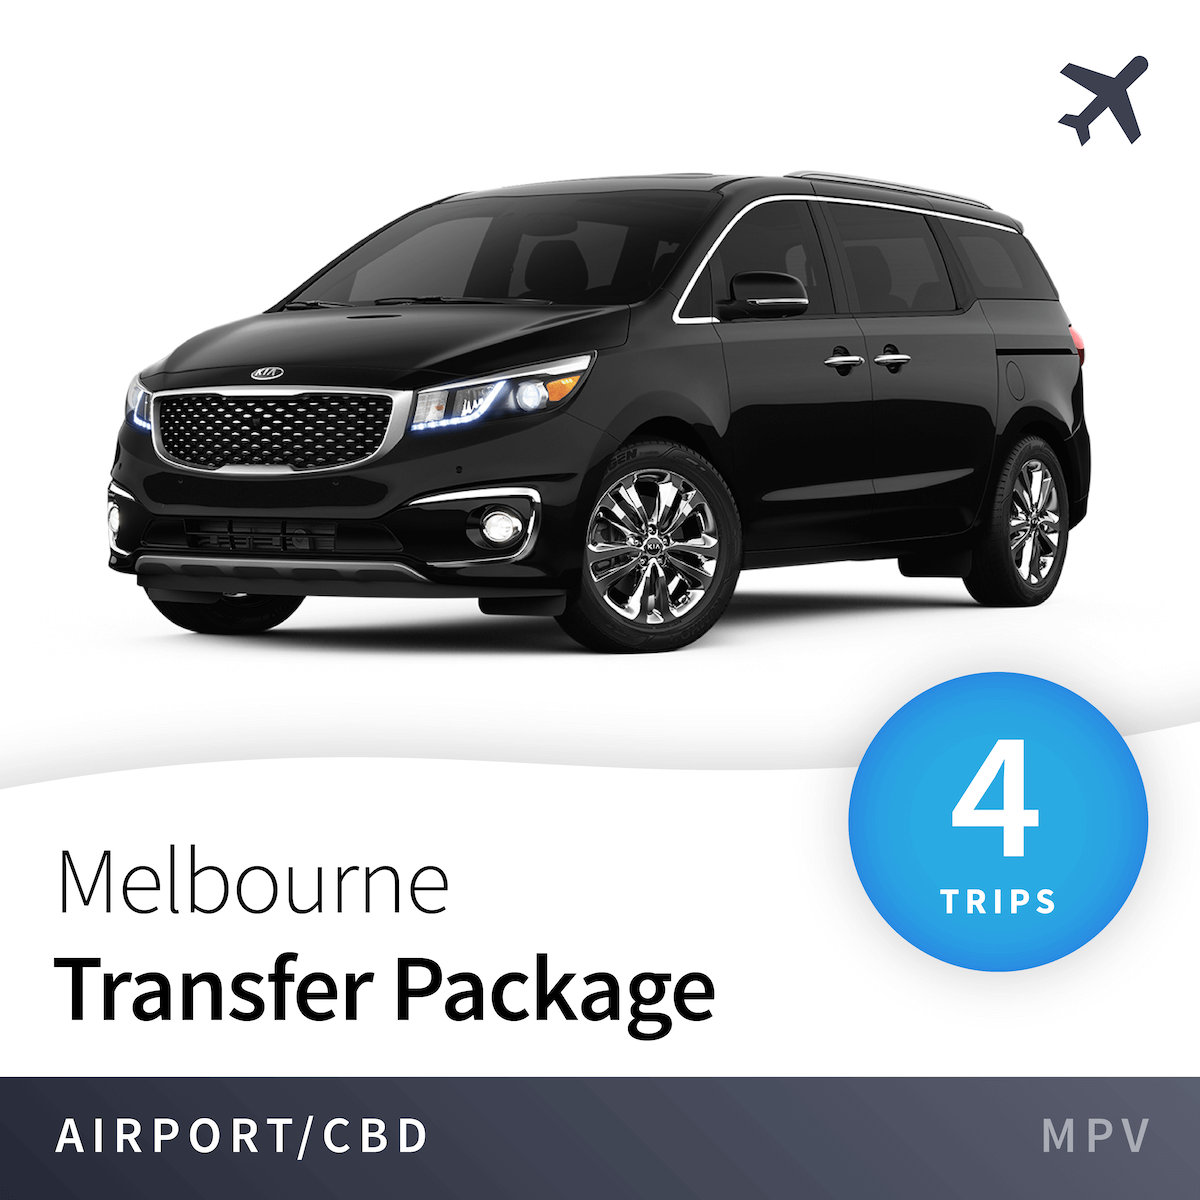 Melbourne Airport Transfer Package - MPV (4 Trips) 7